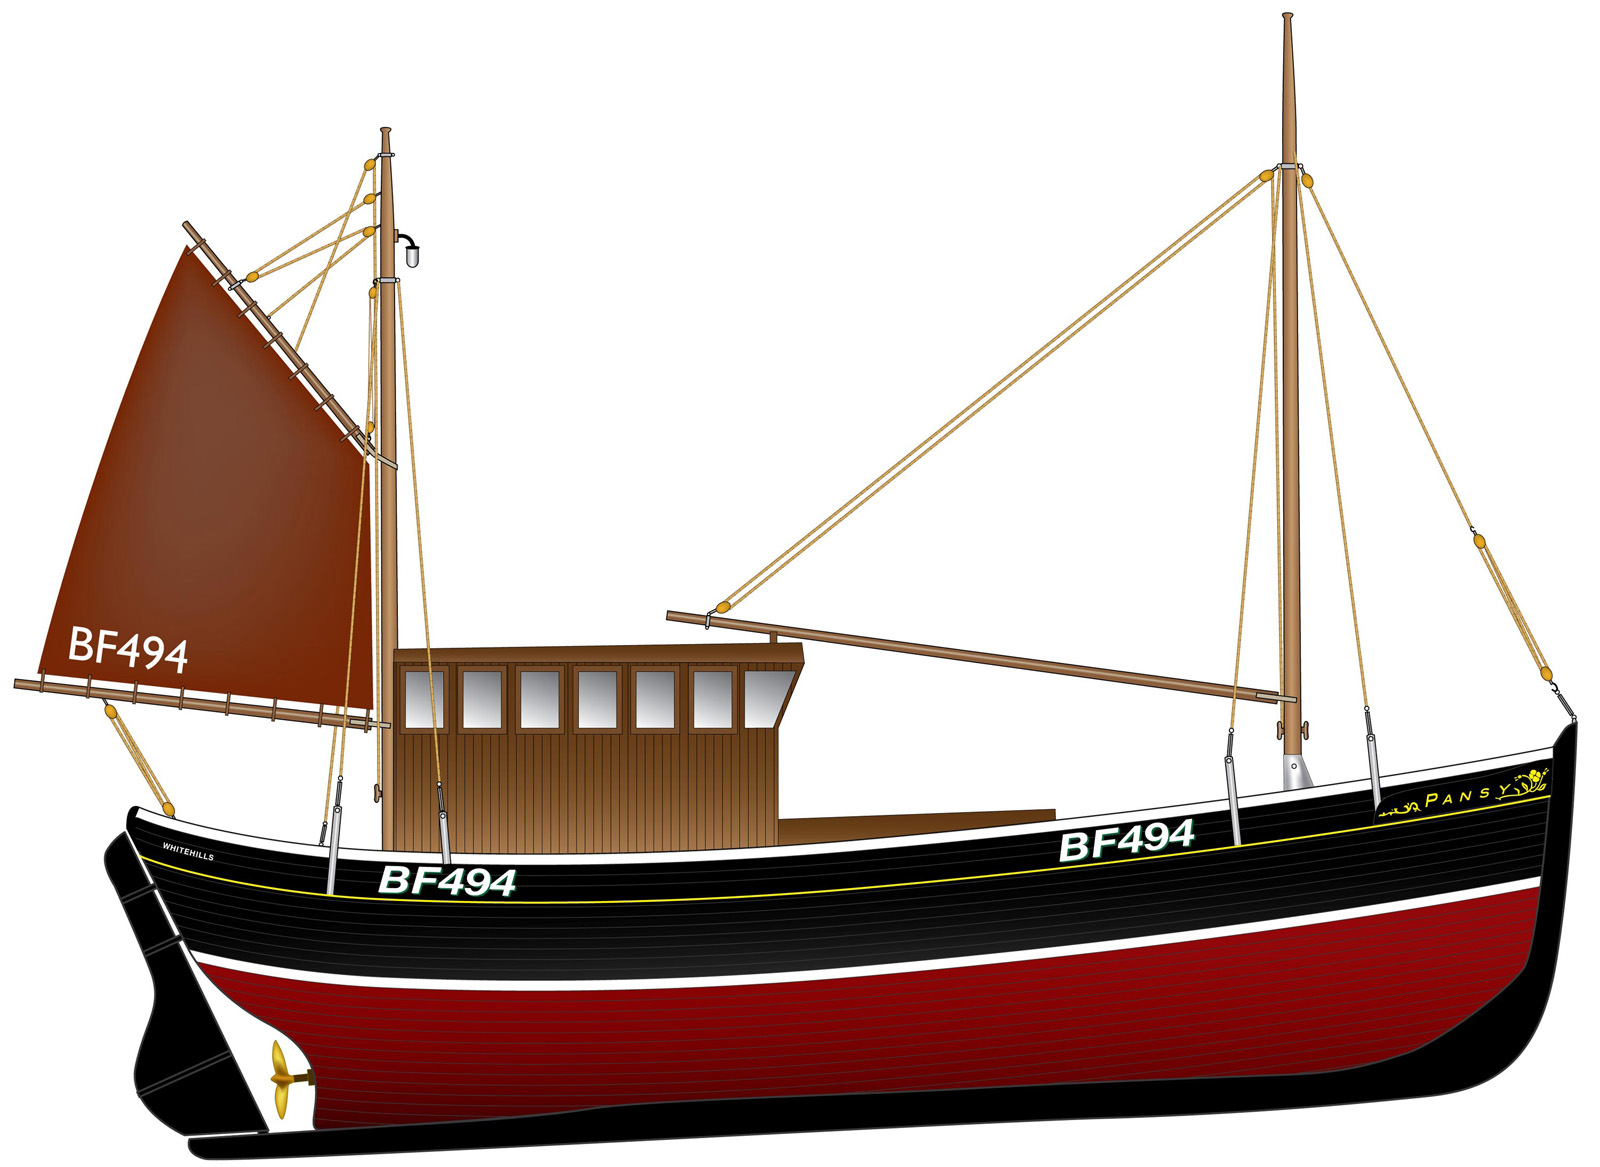 Found Boat plans classic | Berboatbet